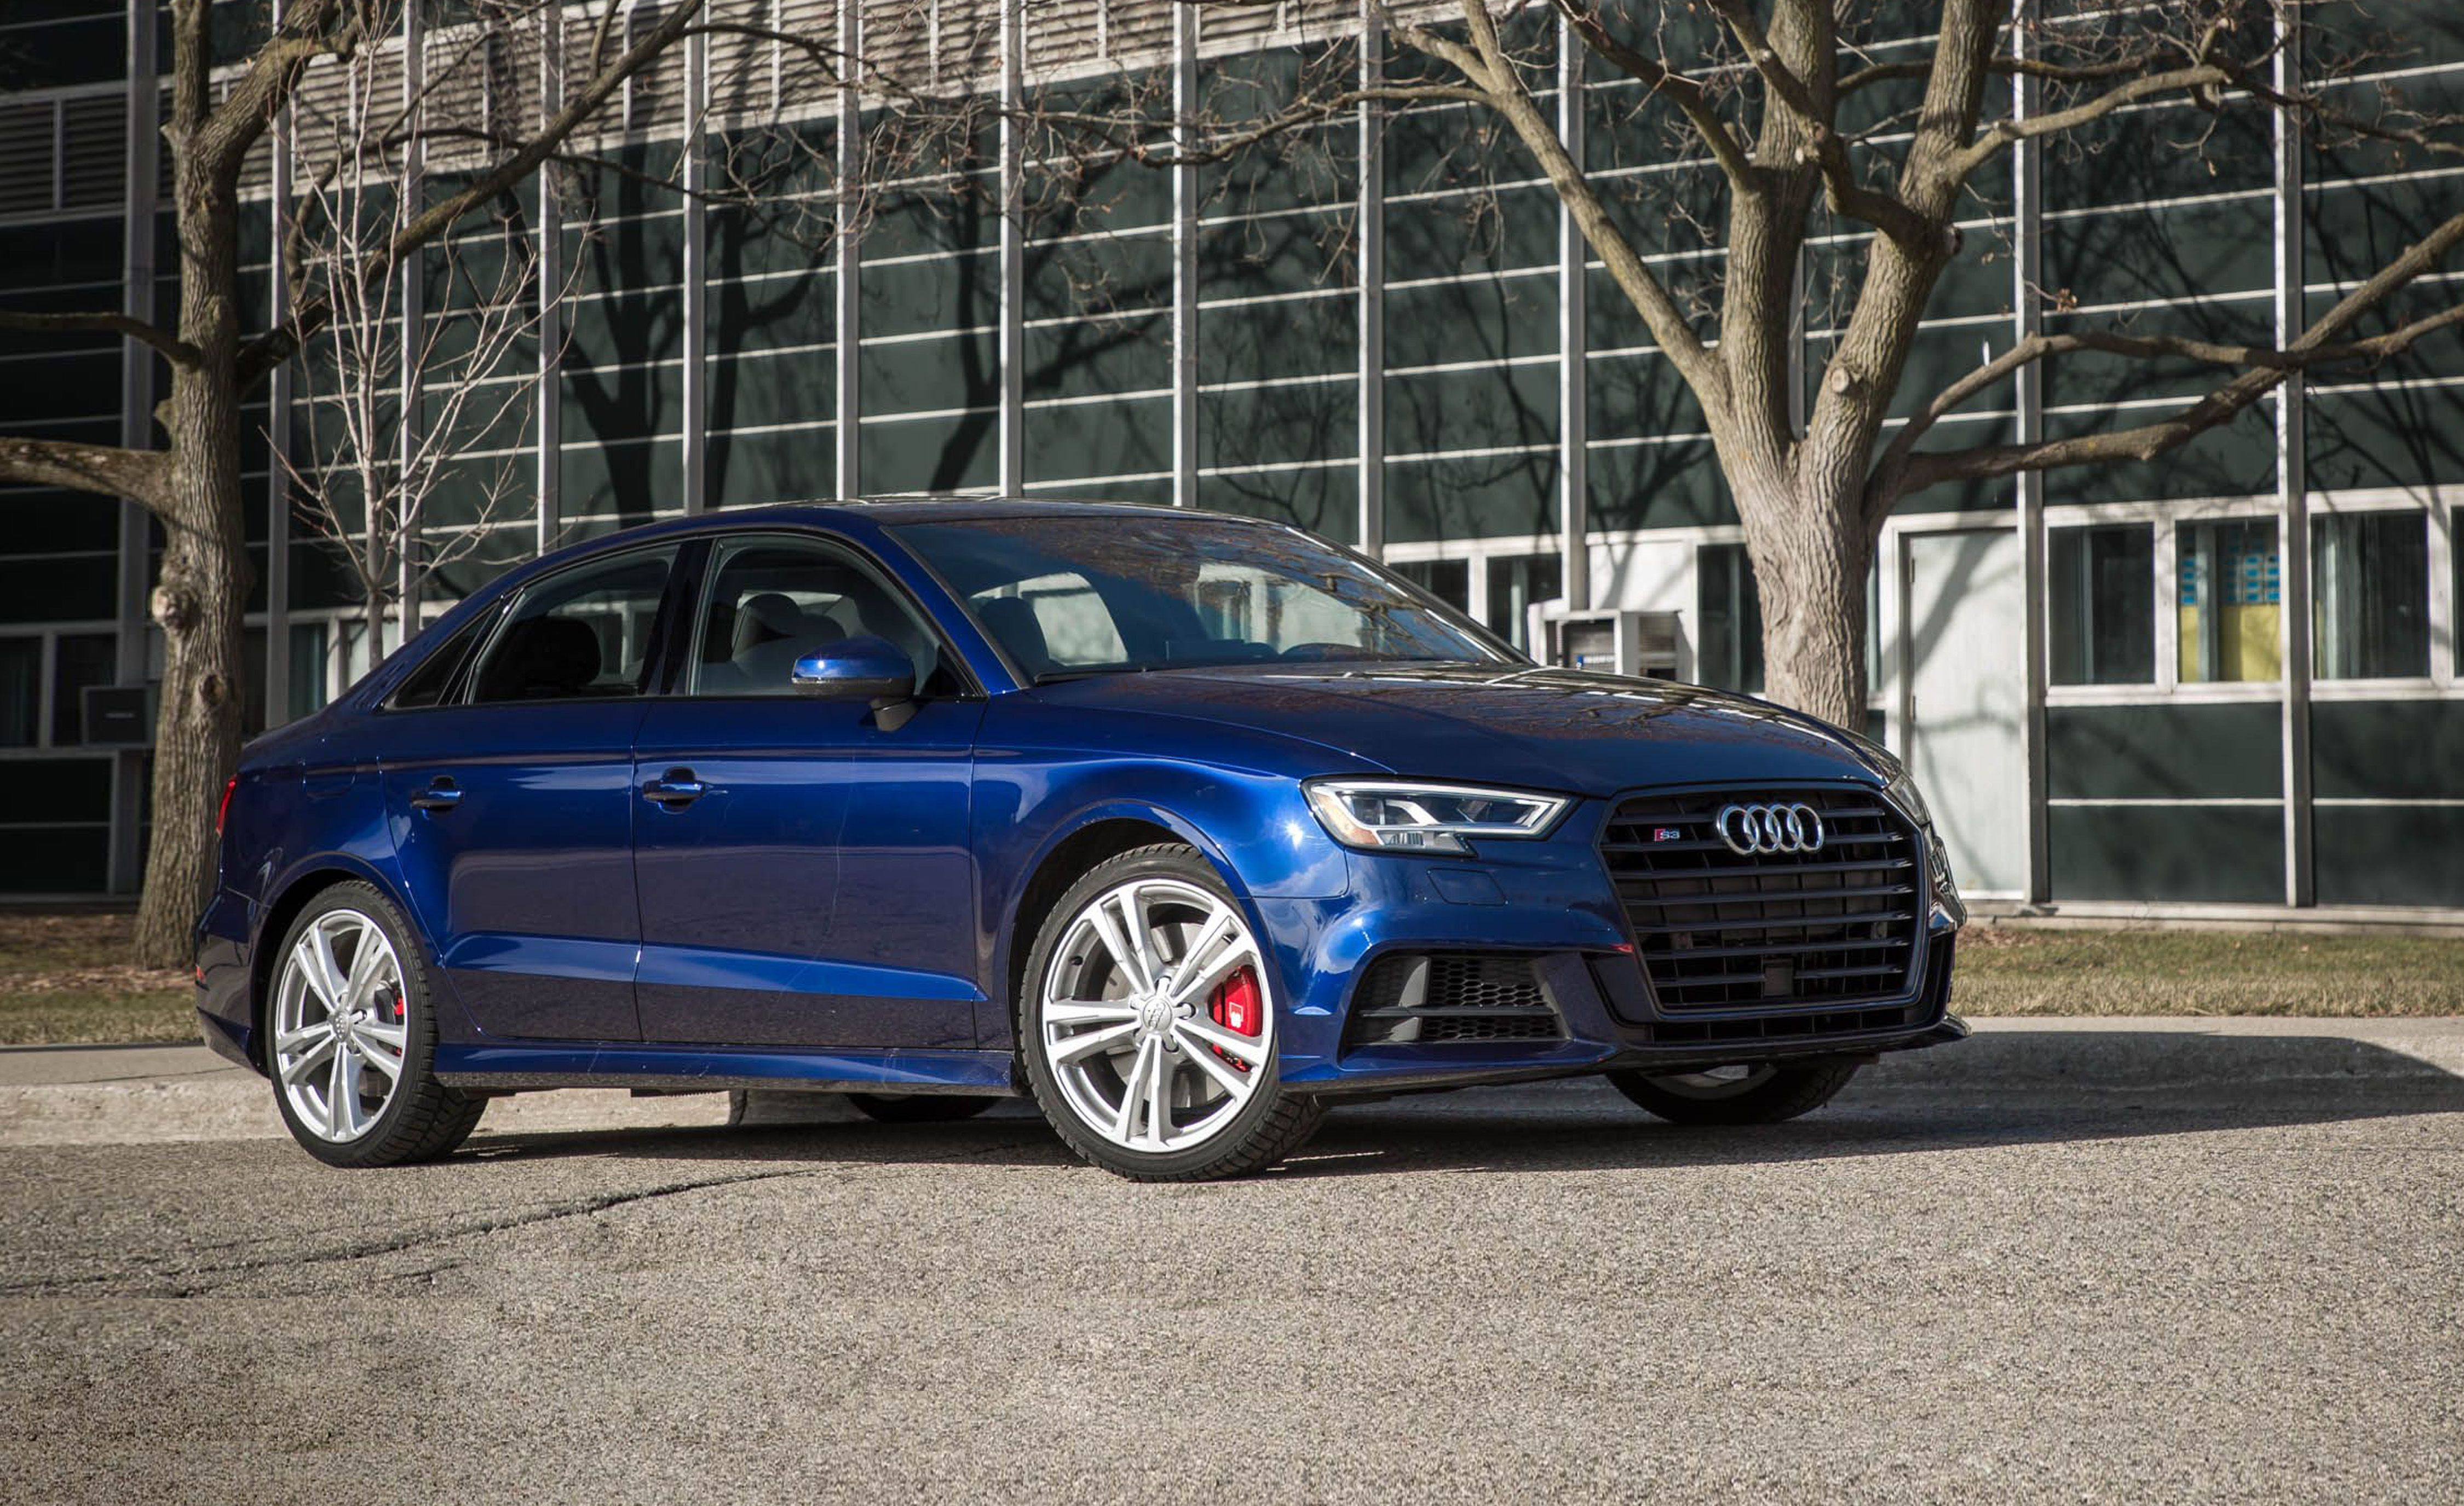 2019 audi s3 reviews audi s3 price photos and specs car and driver. Black Bedroom Furniture Sets. Home Design Ideas